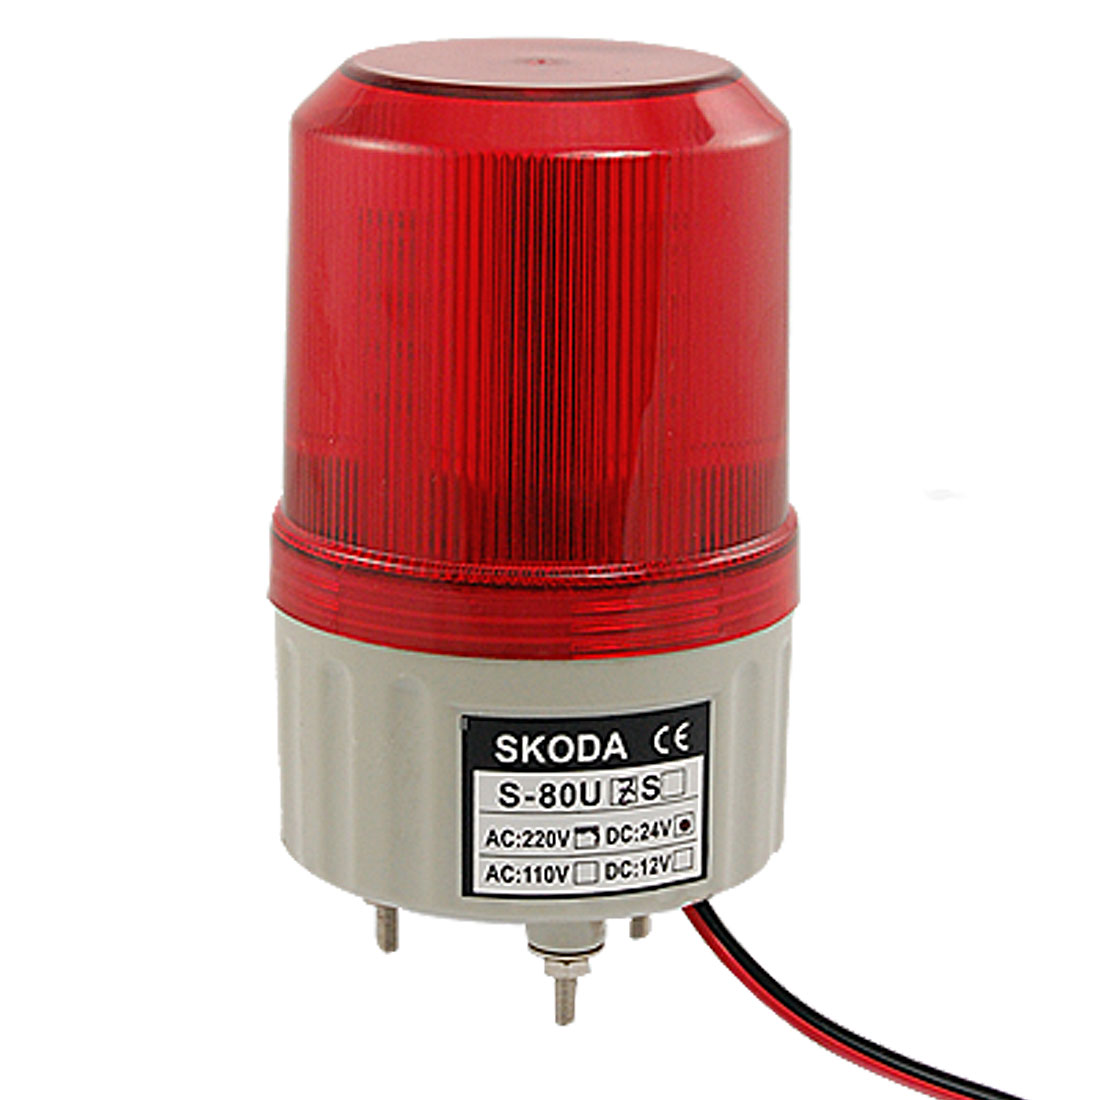 DC 24V Traffic Industrial Strobe Red LED Signal Tower Warning Light